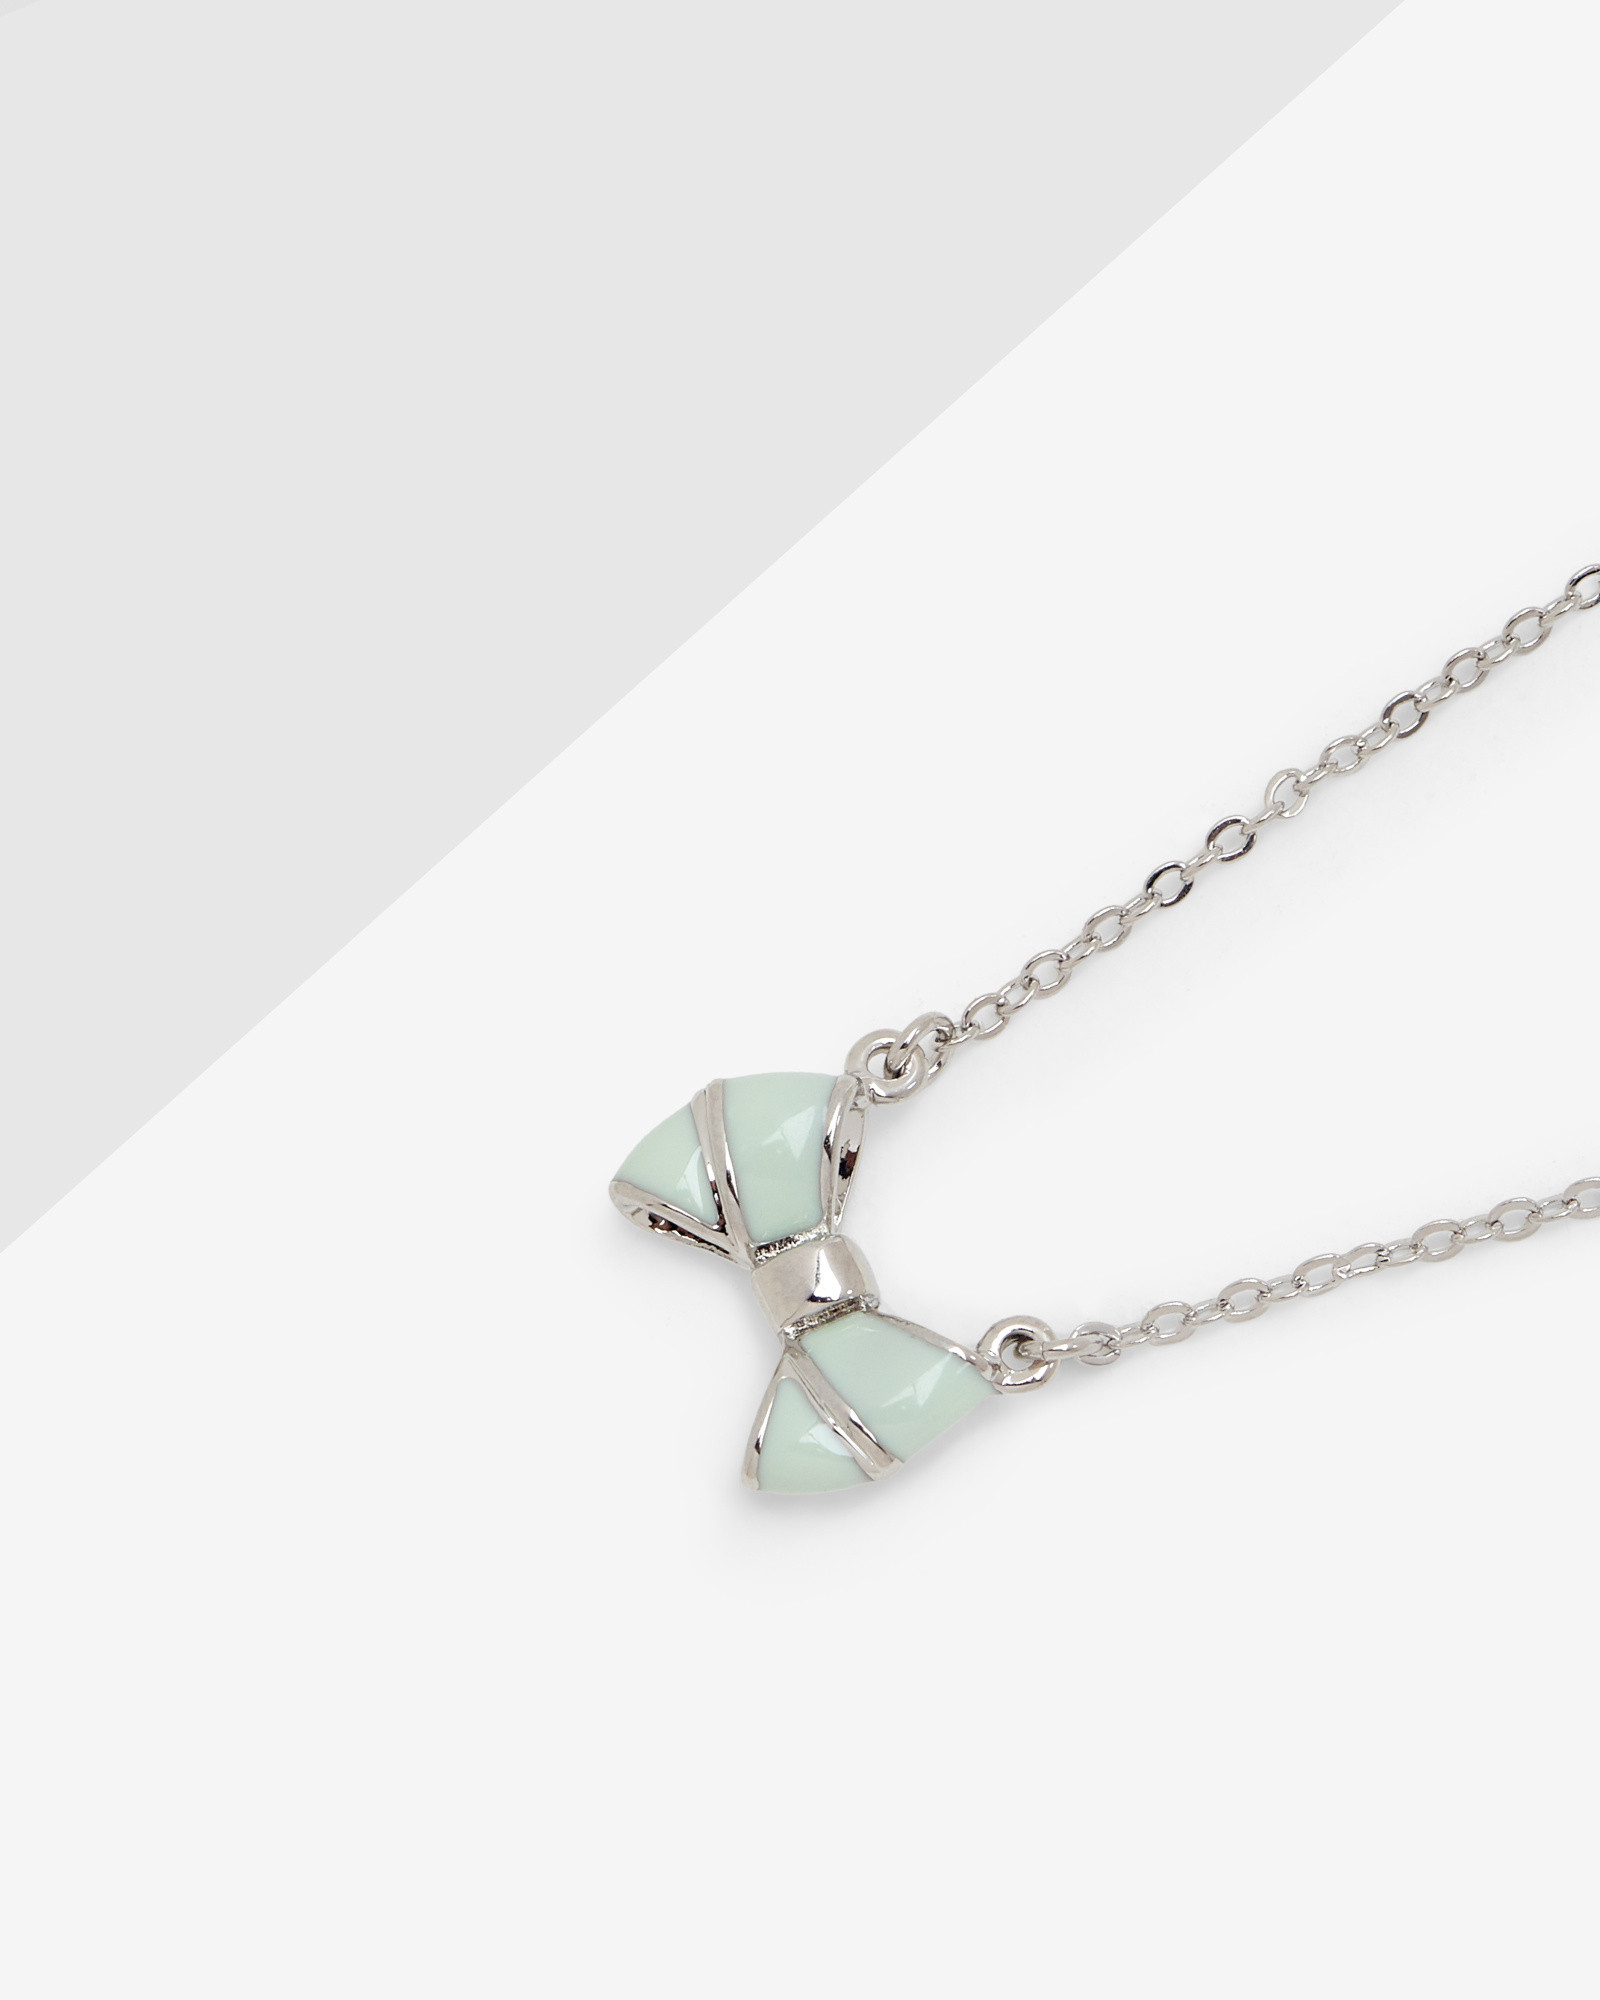 Bow Sterling Silver Pendant Necklace Ted Baker h5bGCXc